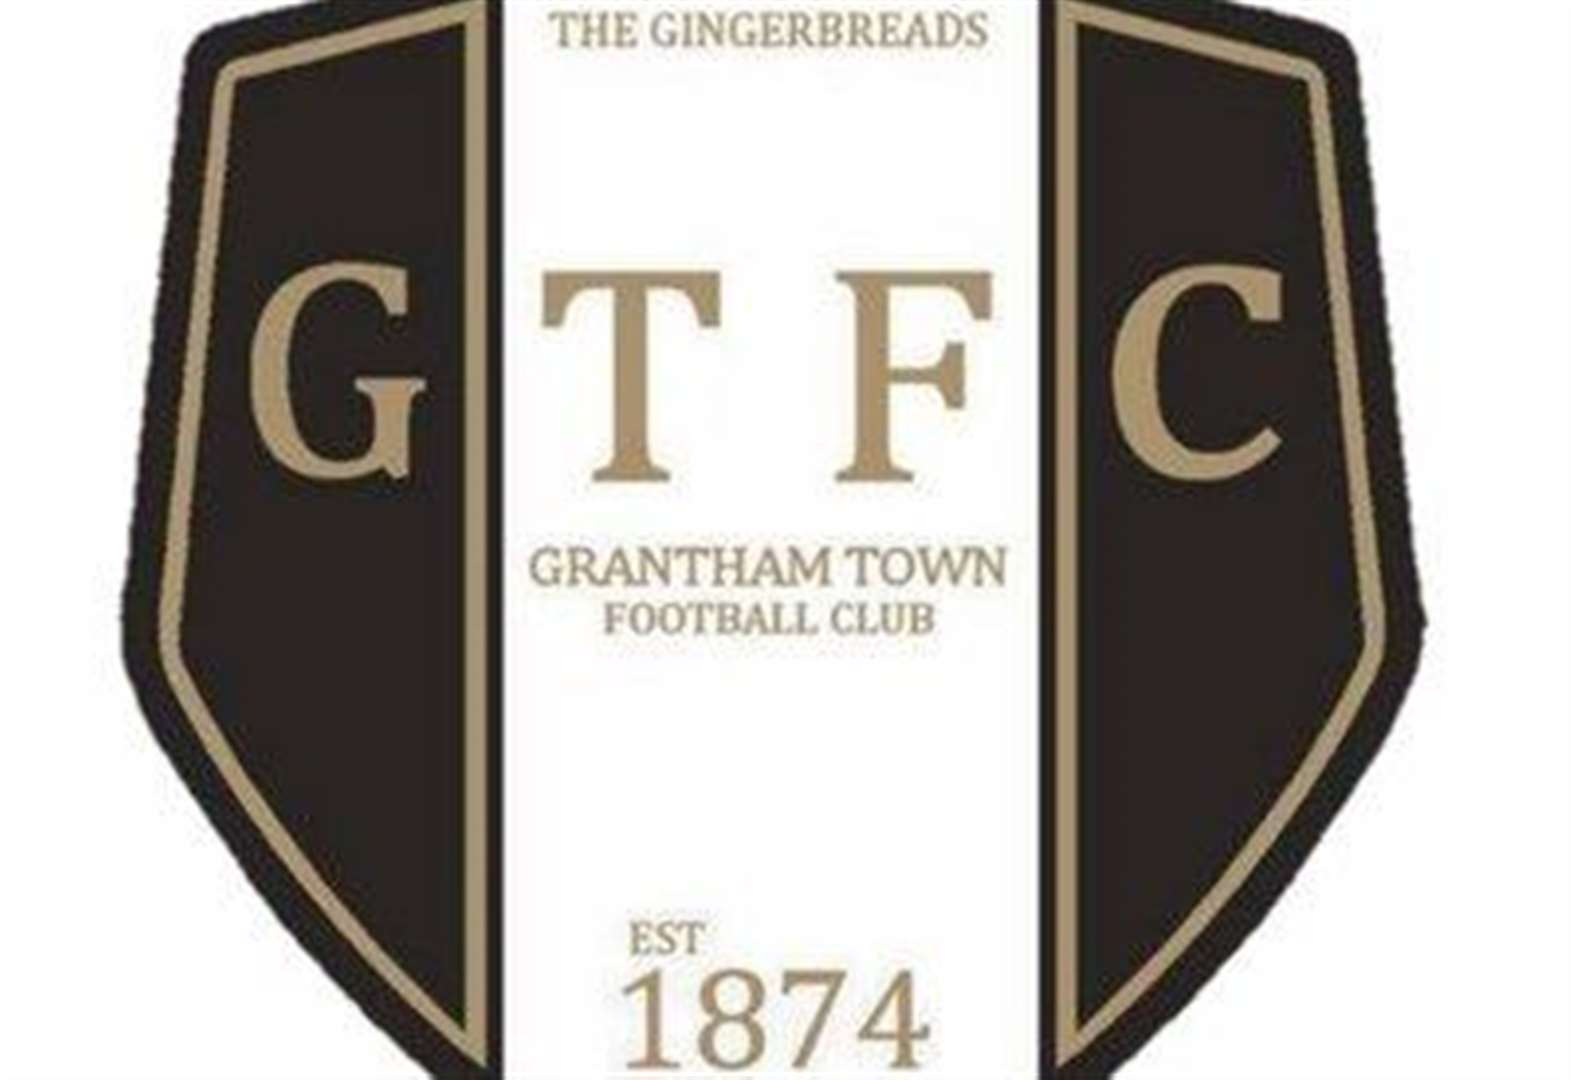 Gingerbread chairman announces one price policy for season tickets